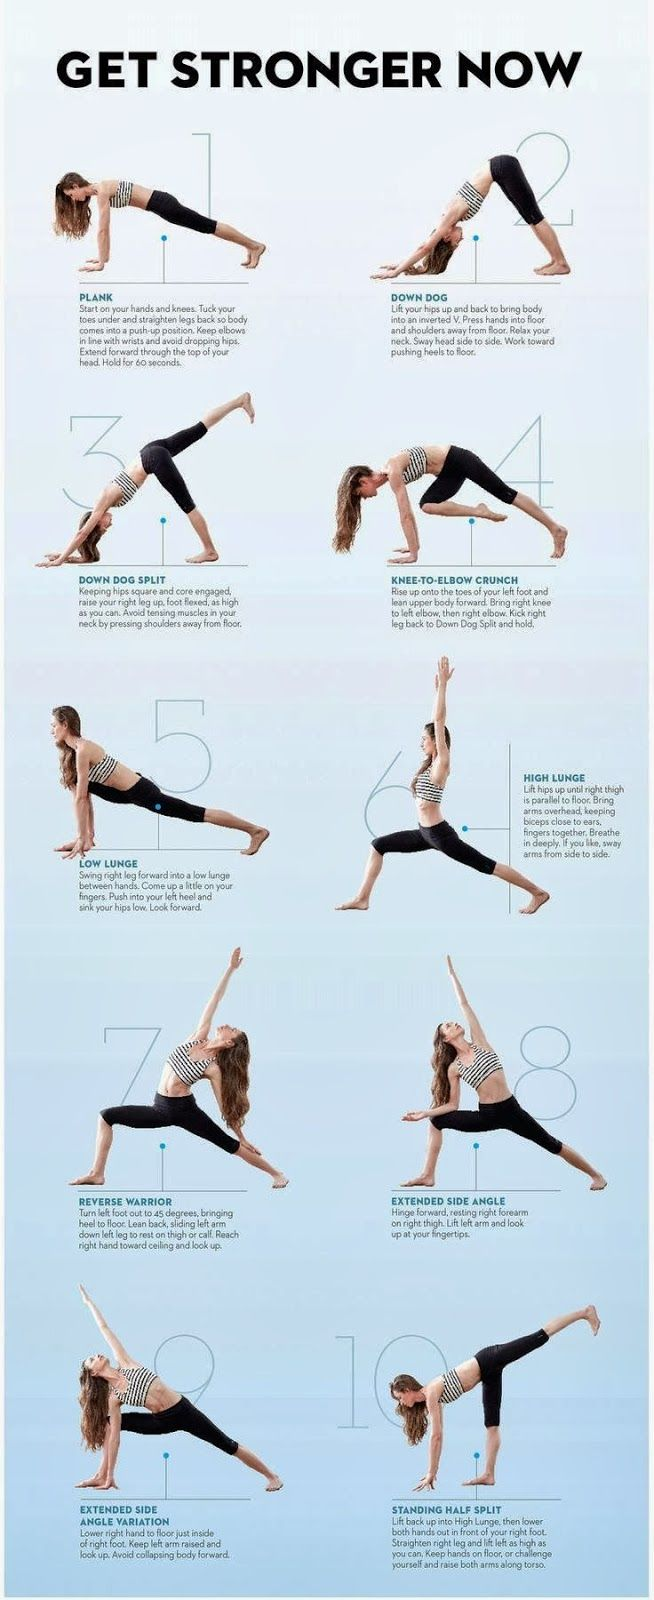 HOW TO GET STRONGER These yoga poses will help you get in shape and get stronger. www.littlevendorathletics.com